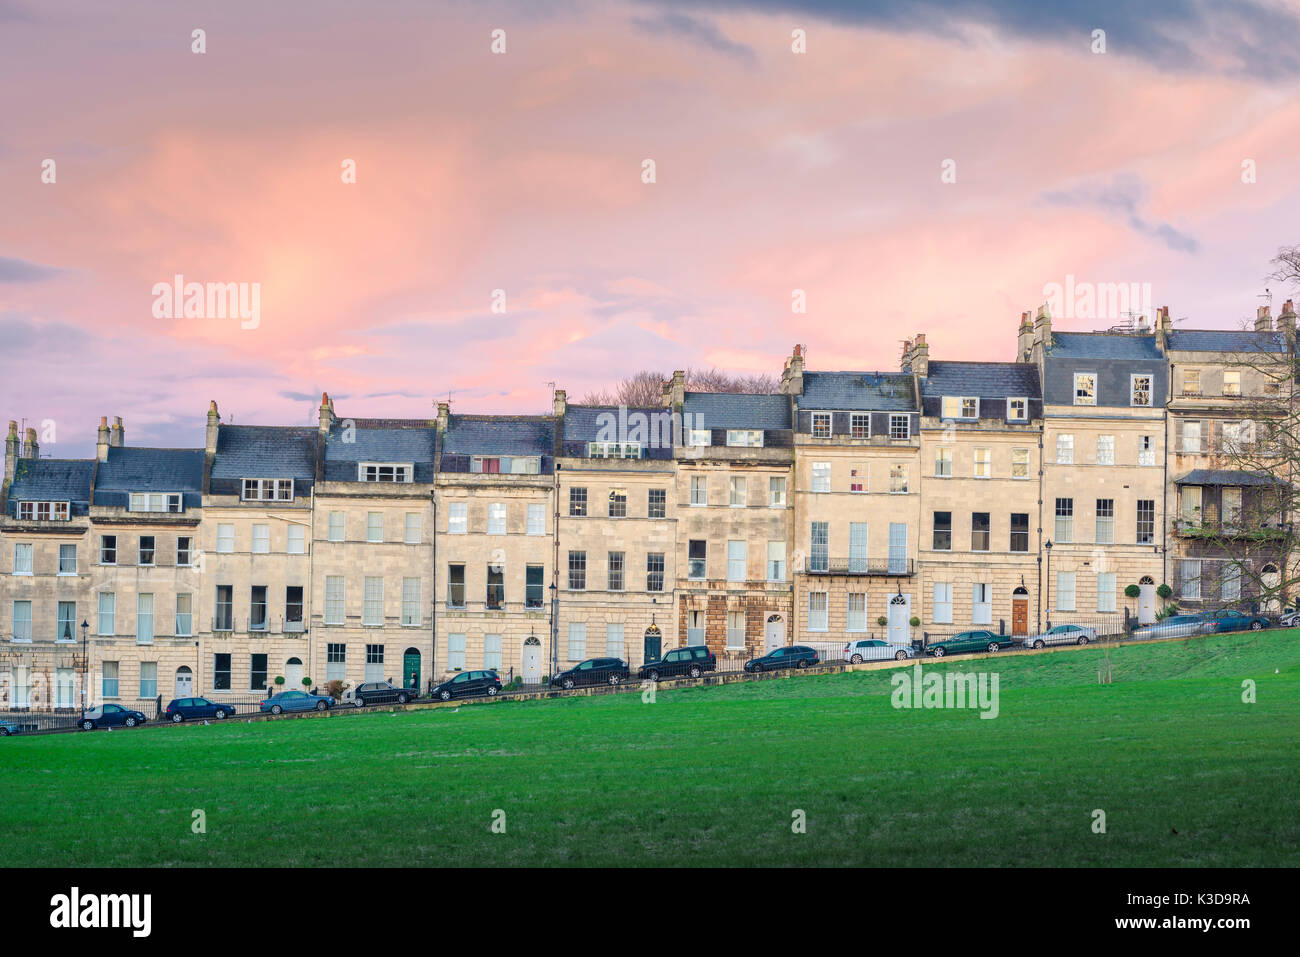 Bath city houses, view of a row of Georgian terraced houses known as Marlborough Buildings facing Victoria Park in the city of Bath, Somerset, UK Stock Photo